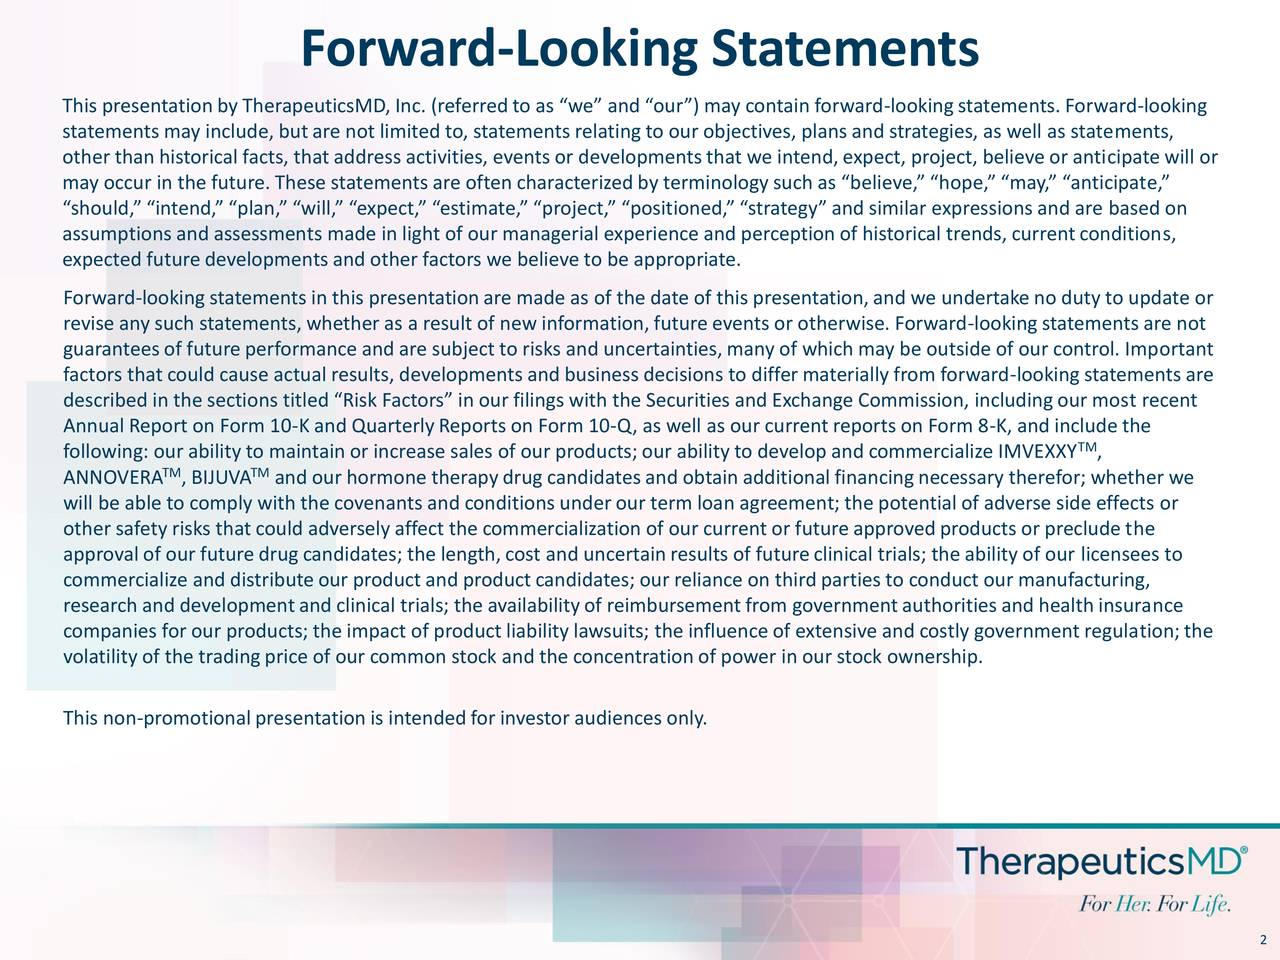 """This presentationby TherapeuticsMD,Inc. (referredto as """"we"""" and """"our"""") may contain forward-lookingstatements. Forward-looking statements may include, but are not limited to, statements relatingto our objectives, plans and strategies, as well as statements, other than historical facts, that address activities, events or developmentsthat we intend,expect, project, believe or anticipate will or may occur in the future.These statements are often characterizedby terminologysuch as """"believe,"""" """"hope,"""" """"may,"""" """"anticipate,"""" """"should,"""" """"intend,"""" """"plan,"""" """"will,"""" """"expect,"""" """"estimate,"""" """"project,"""" """"positioned,""""""""strategy"""" and similar expressions and are based on assumptions and assessments made in light of our managerial experience and perception of historical trends, currentconditions, expected future developments and other factors we believe to be appropriate. Forward-lookingstatements in this presentationare made as of the date of this presentation,and we undertake no duty to update or revise any such statements, whether as a result of new information,future events or otherwise. Forward-lookingstatements are not guaranteesof future performance and are subject to risks and uncertainties, many of which may be outside of our control. Important factors that could cause actual results, developments and business decisions to differmaterially from forward-lookingstatements are described in the sections titled """"Risk Factors"""" in our filings with the Securities and Exchange Commission, includingour most recent Annual Report on Form 10-K and QuarterlyReports on Form 10-Q, as well as our currentreports on Form 8-K, and include the following: our ability to maintain or increase sales of our products; our ability to develop and commercialize IMVEXXY , ANNOVERA , BIJUVA TMand our hormone therapydrug candidates and obtain additionalfinancingnecessary therefor; whether we will be able to comply with the covenants and conditions underour term loan agreement; the potential of adverse side effects """